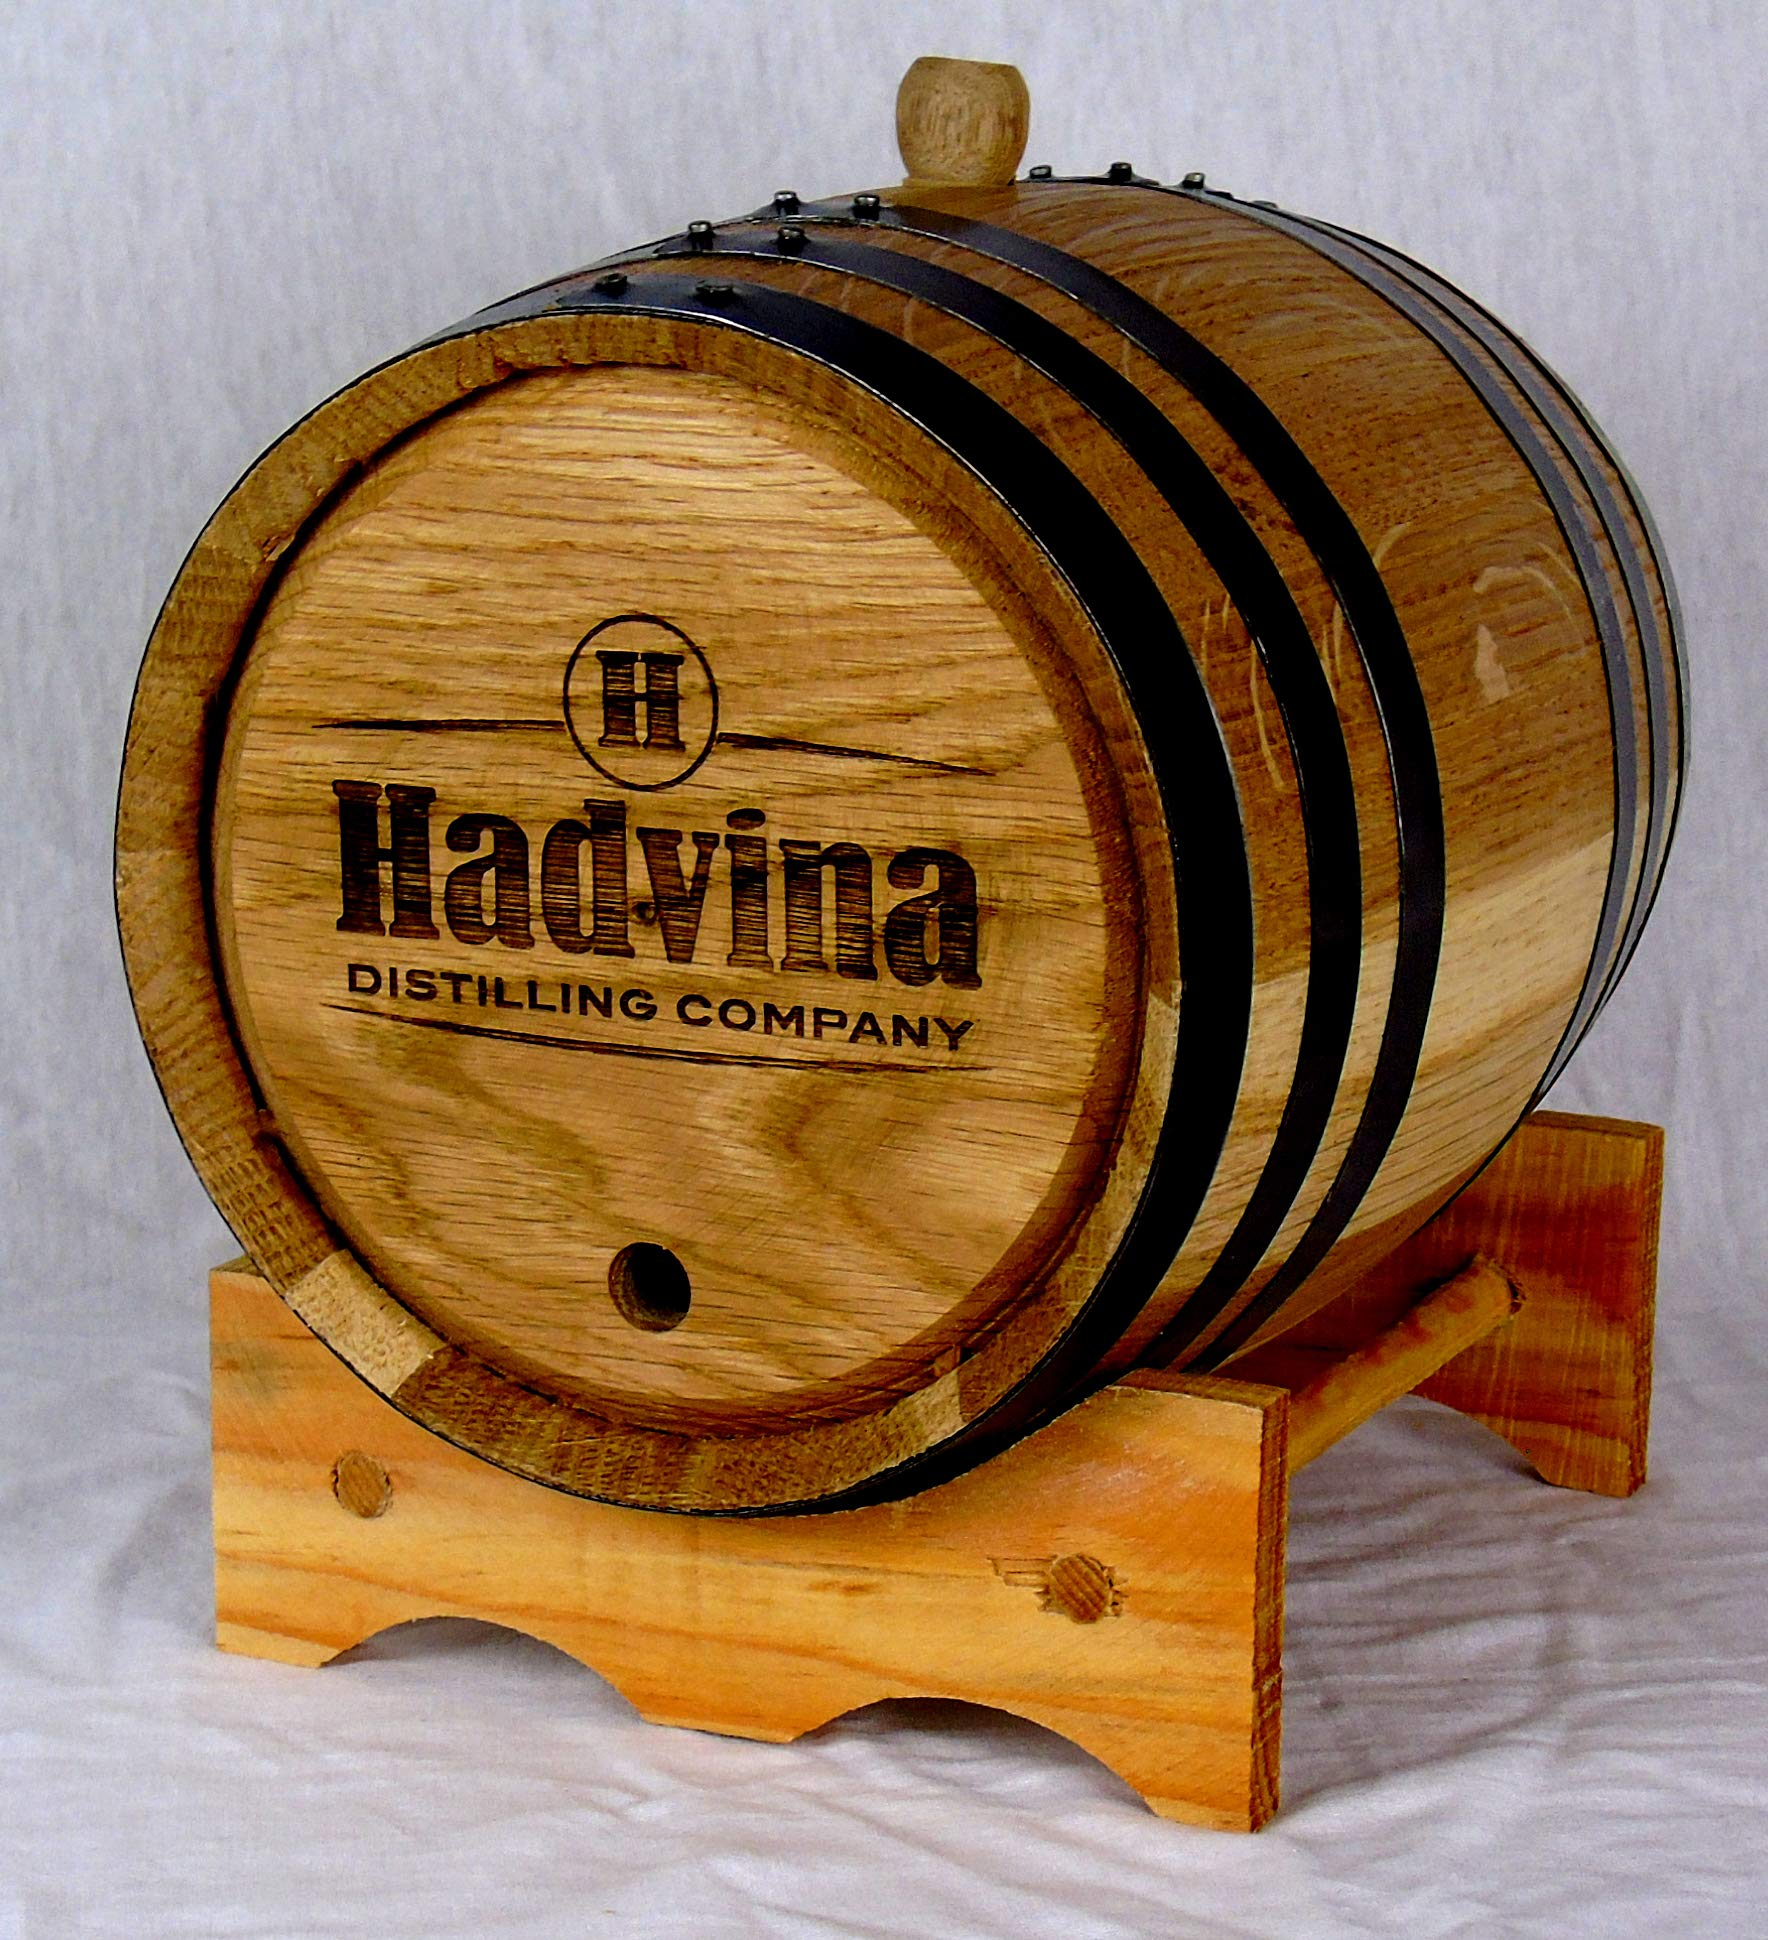 Personalized Engraved White American Oak Aging Barrels RHB135 (20 Liter)